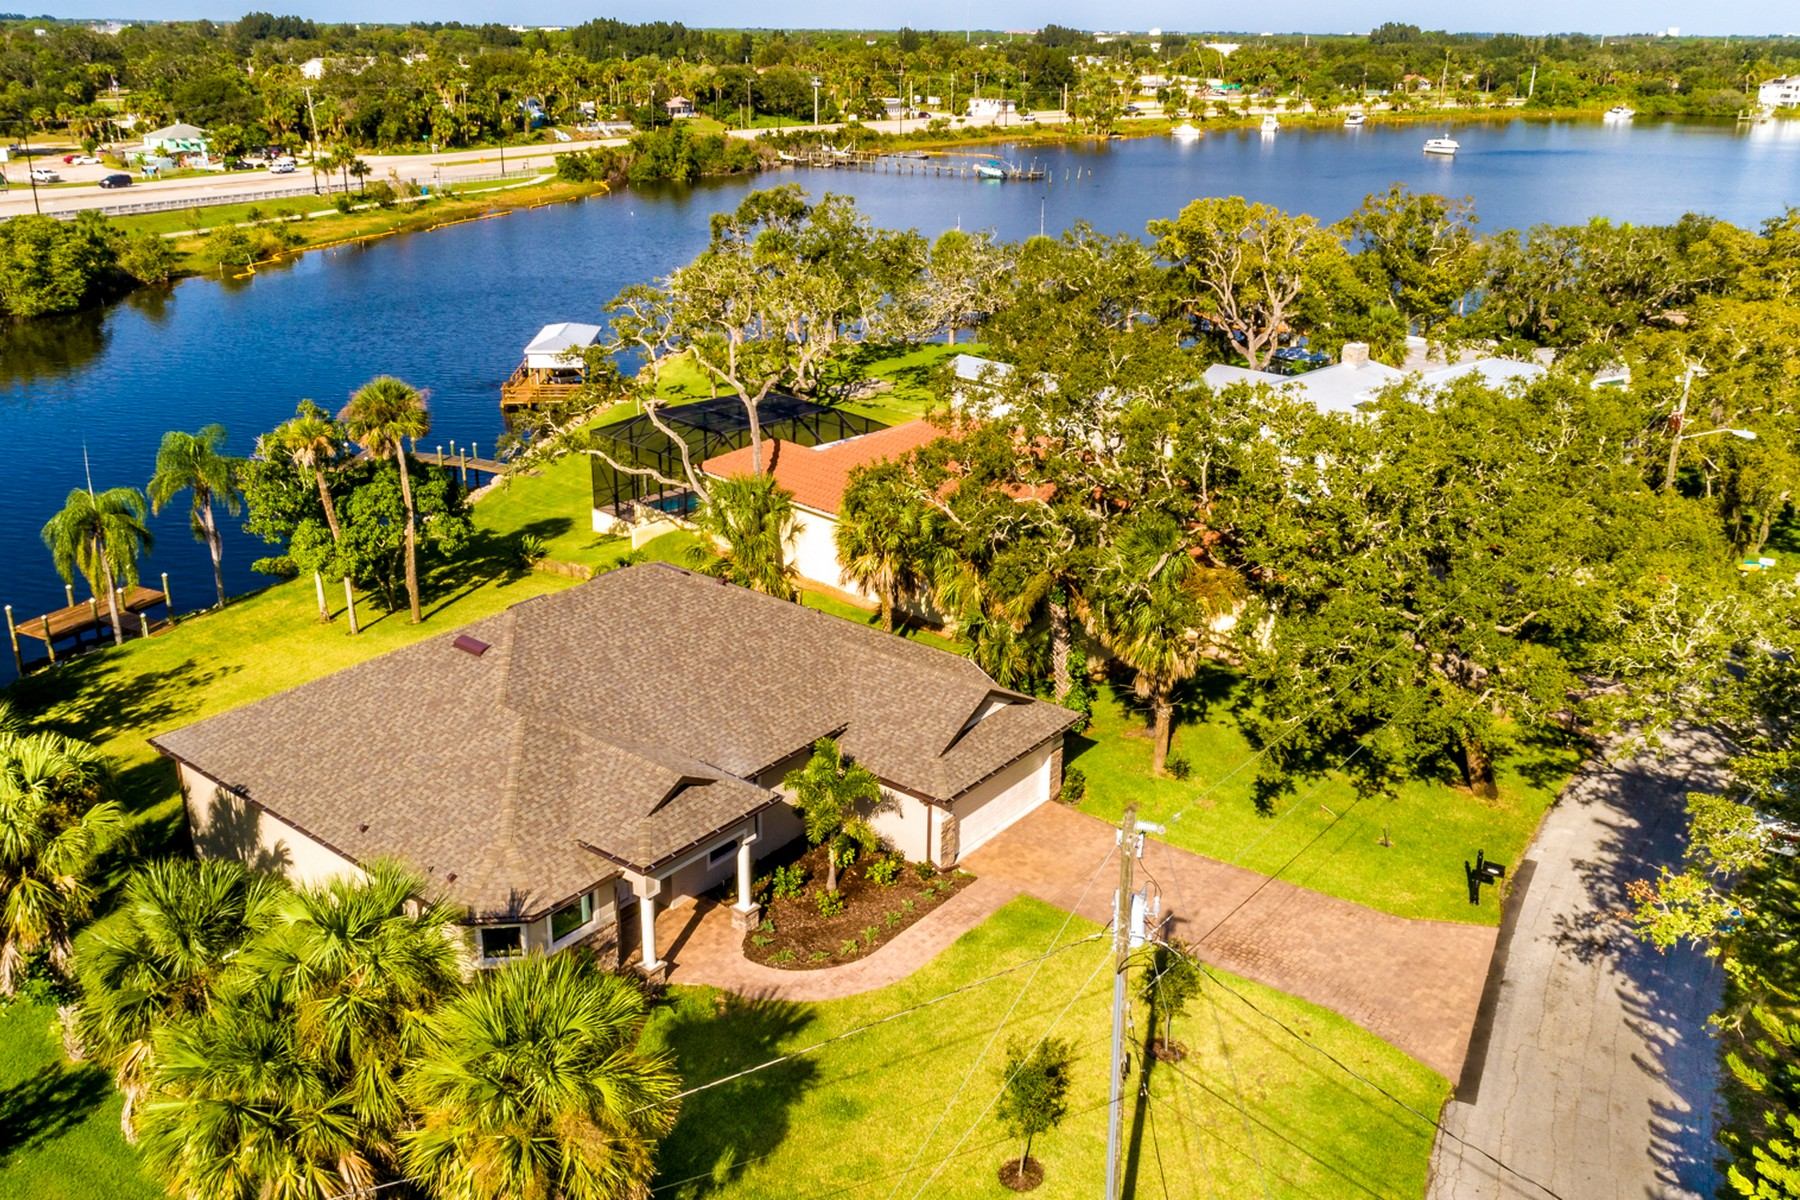 Single Family Homes for Active at Brand New Waterfront Home in Palm Bay Point 1434 Herndon Circle NE Palm Bay, Florida 32905 United States